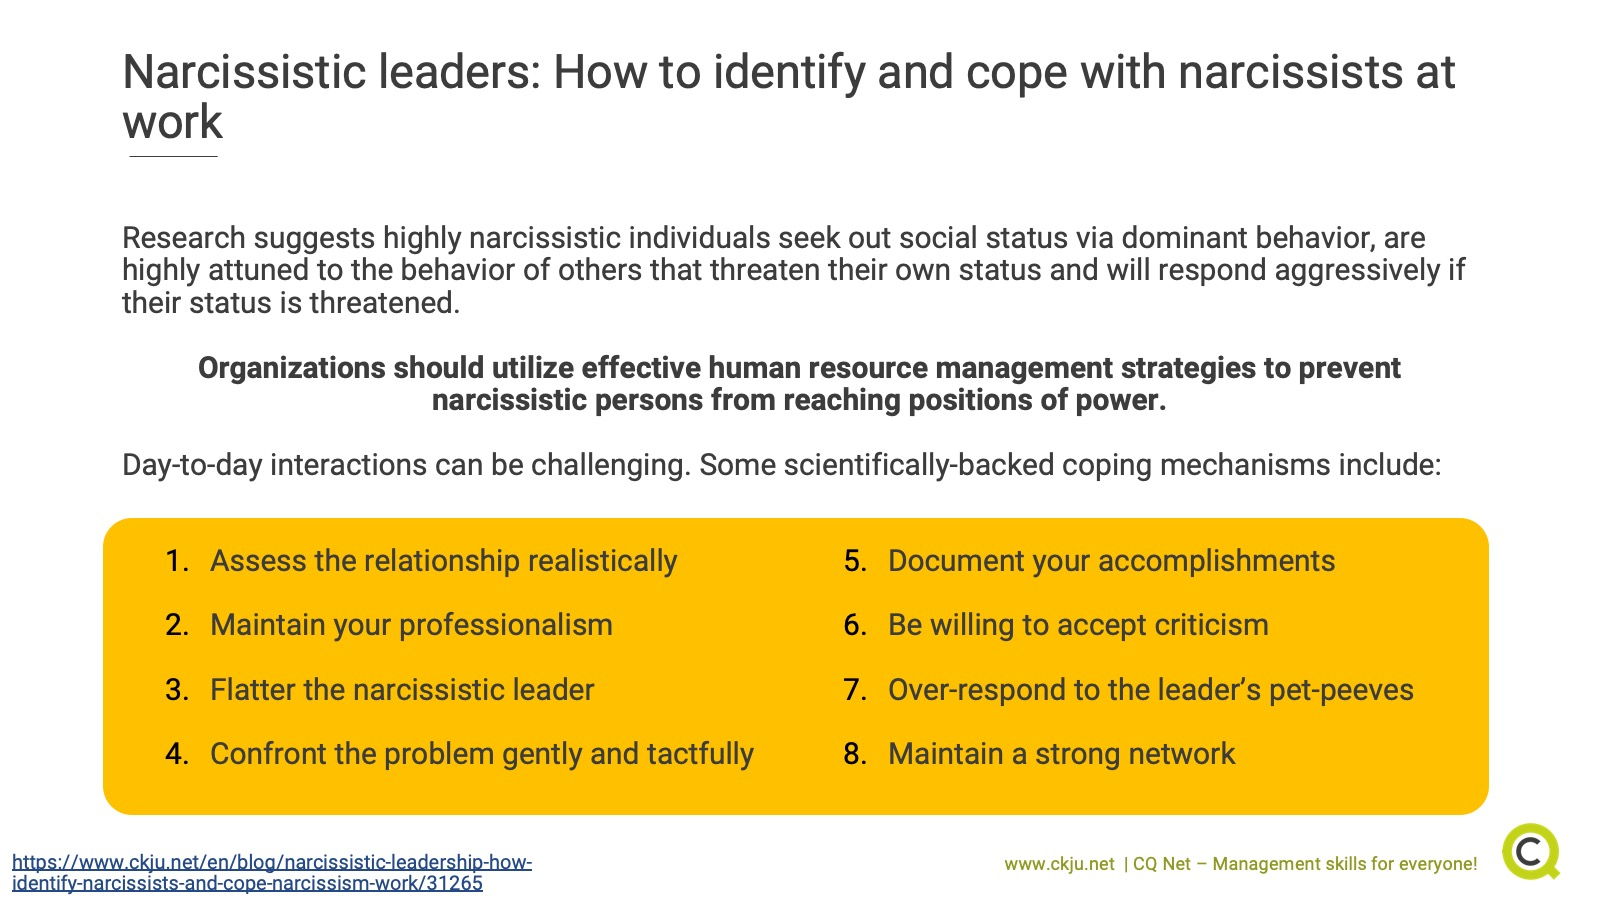 How to identify and cope with narcissistic leaders at work